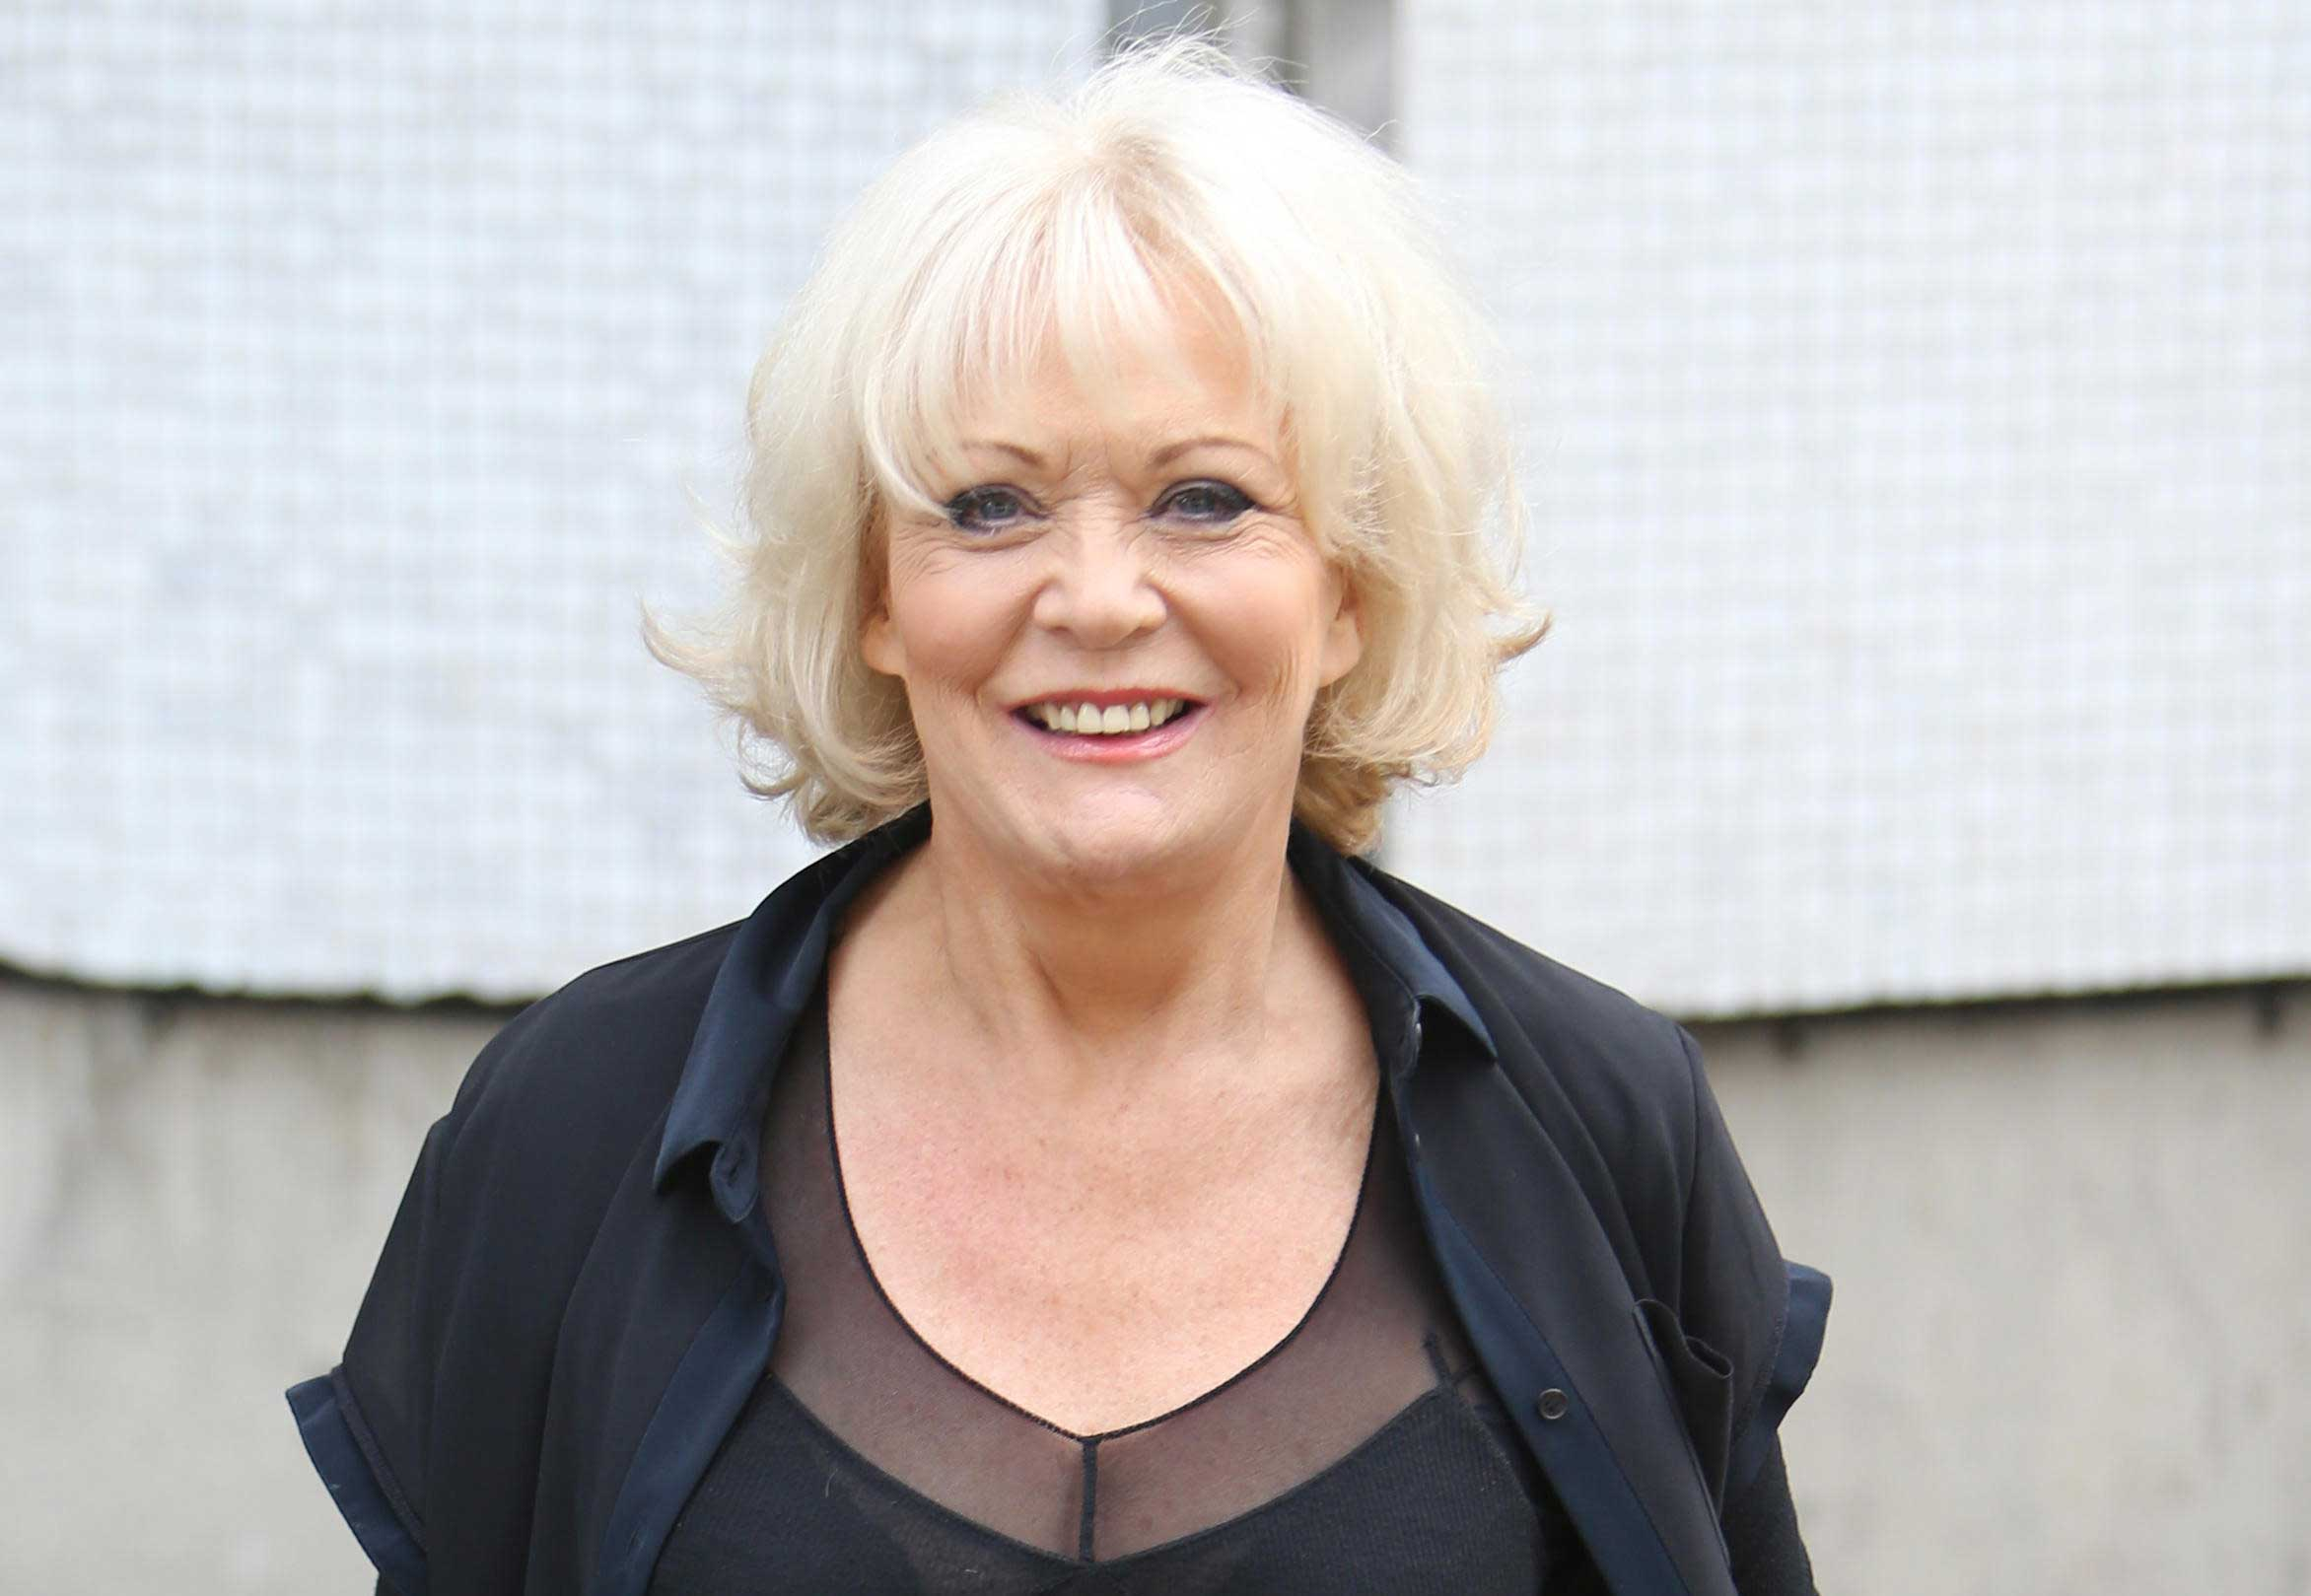 Sherrie Hewson naked (32 photo), Ass, Bikini, Boobs, legs 2020